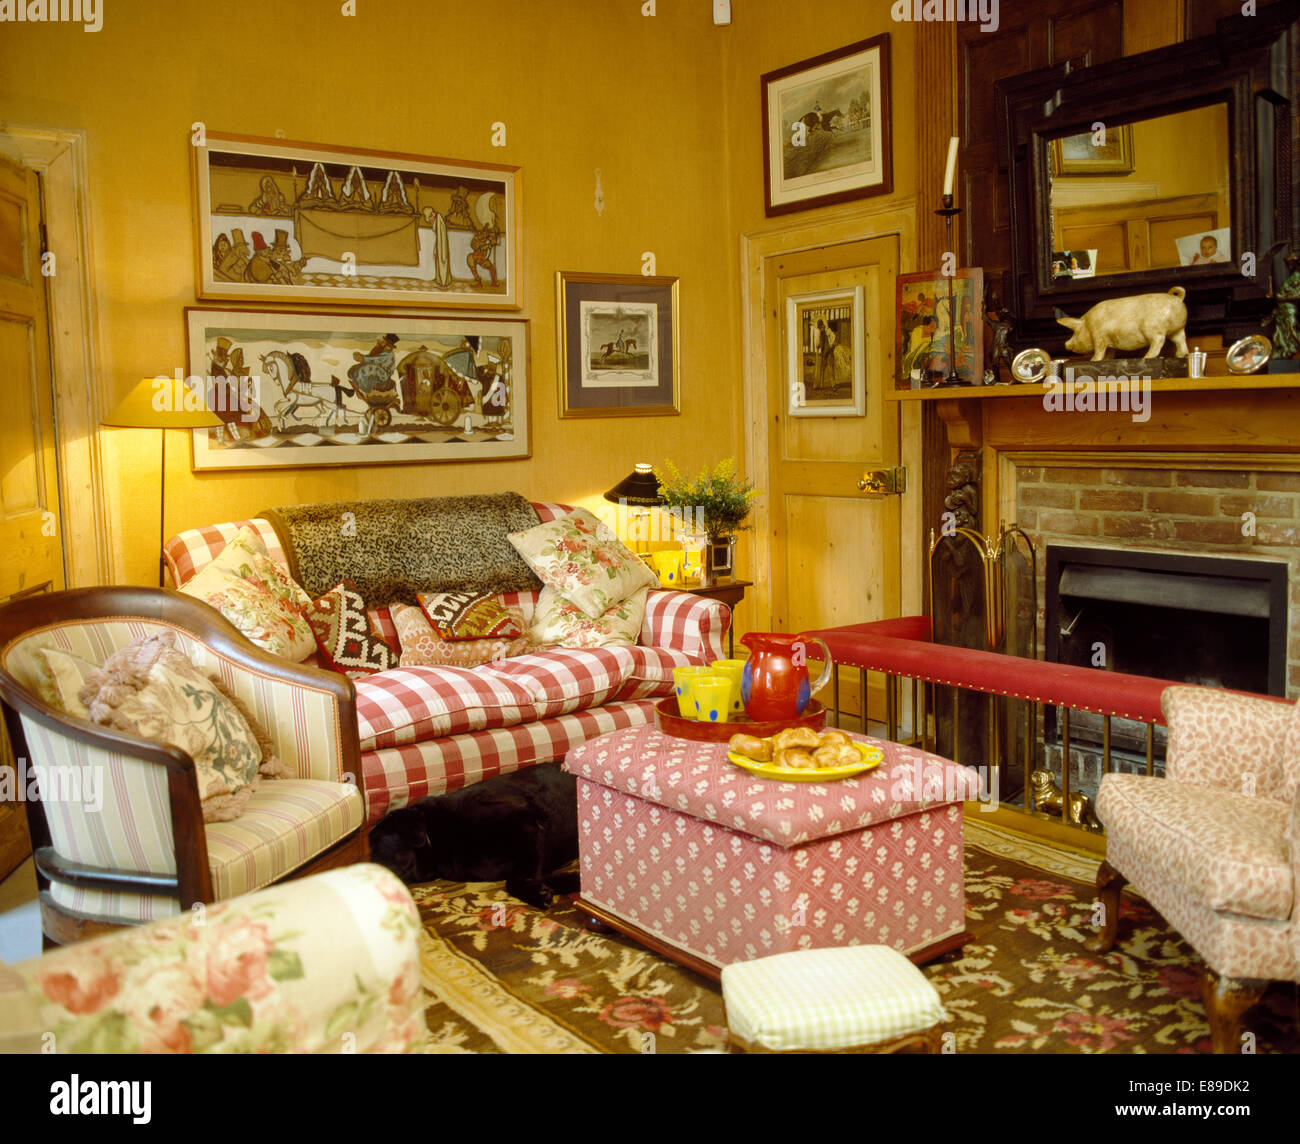 Amazing Pictures Above Red Striped Sofa In Country Living Room With Pink Ottoman In  Front Of Fireplace